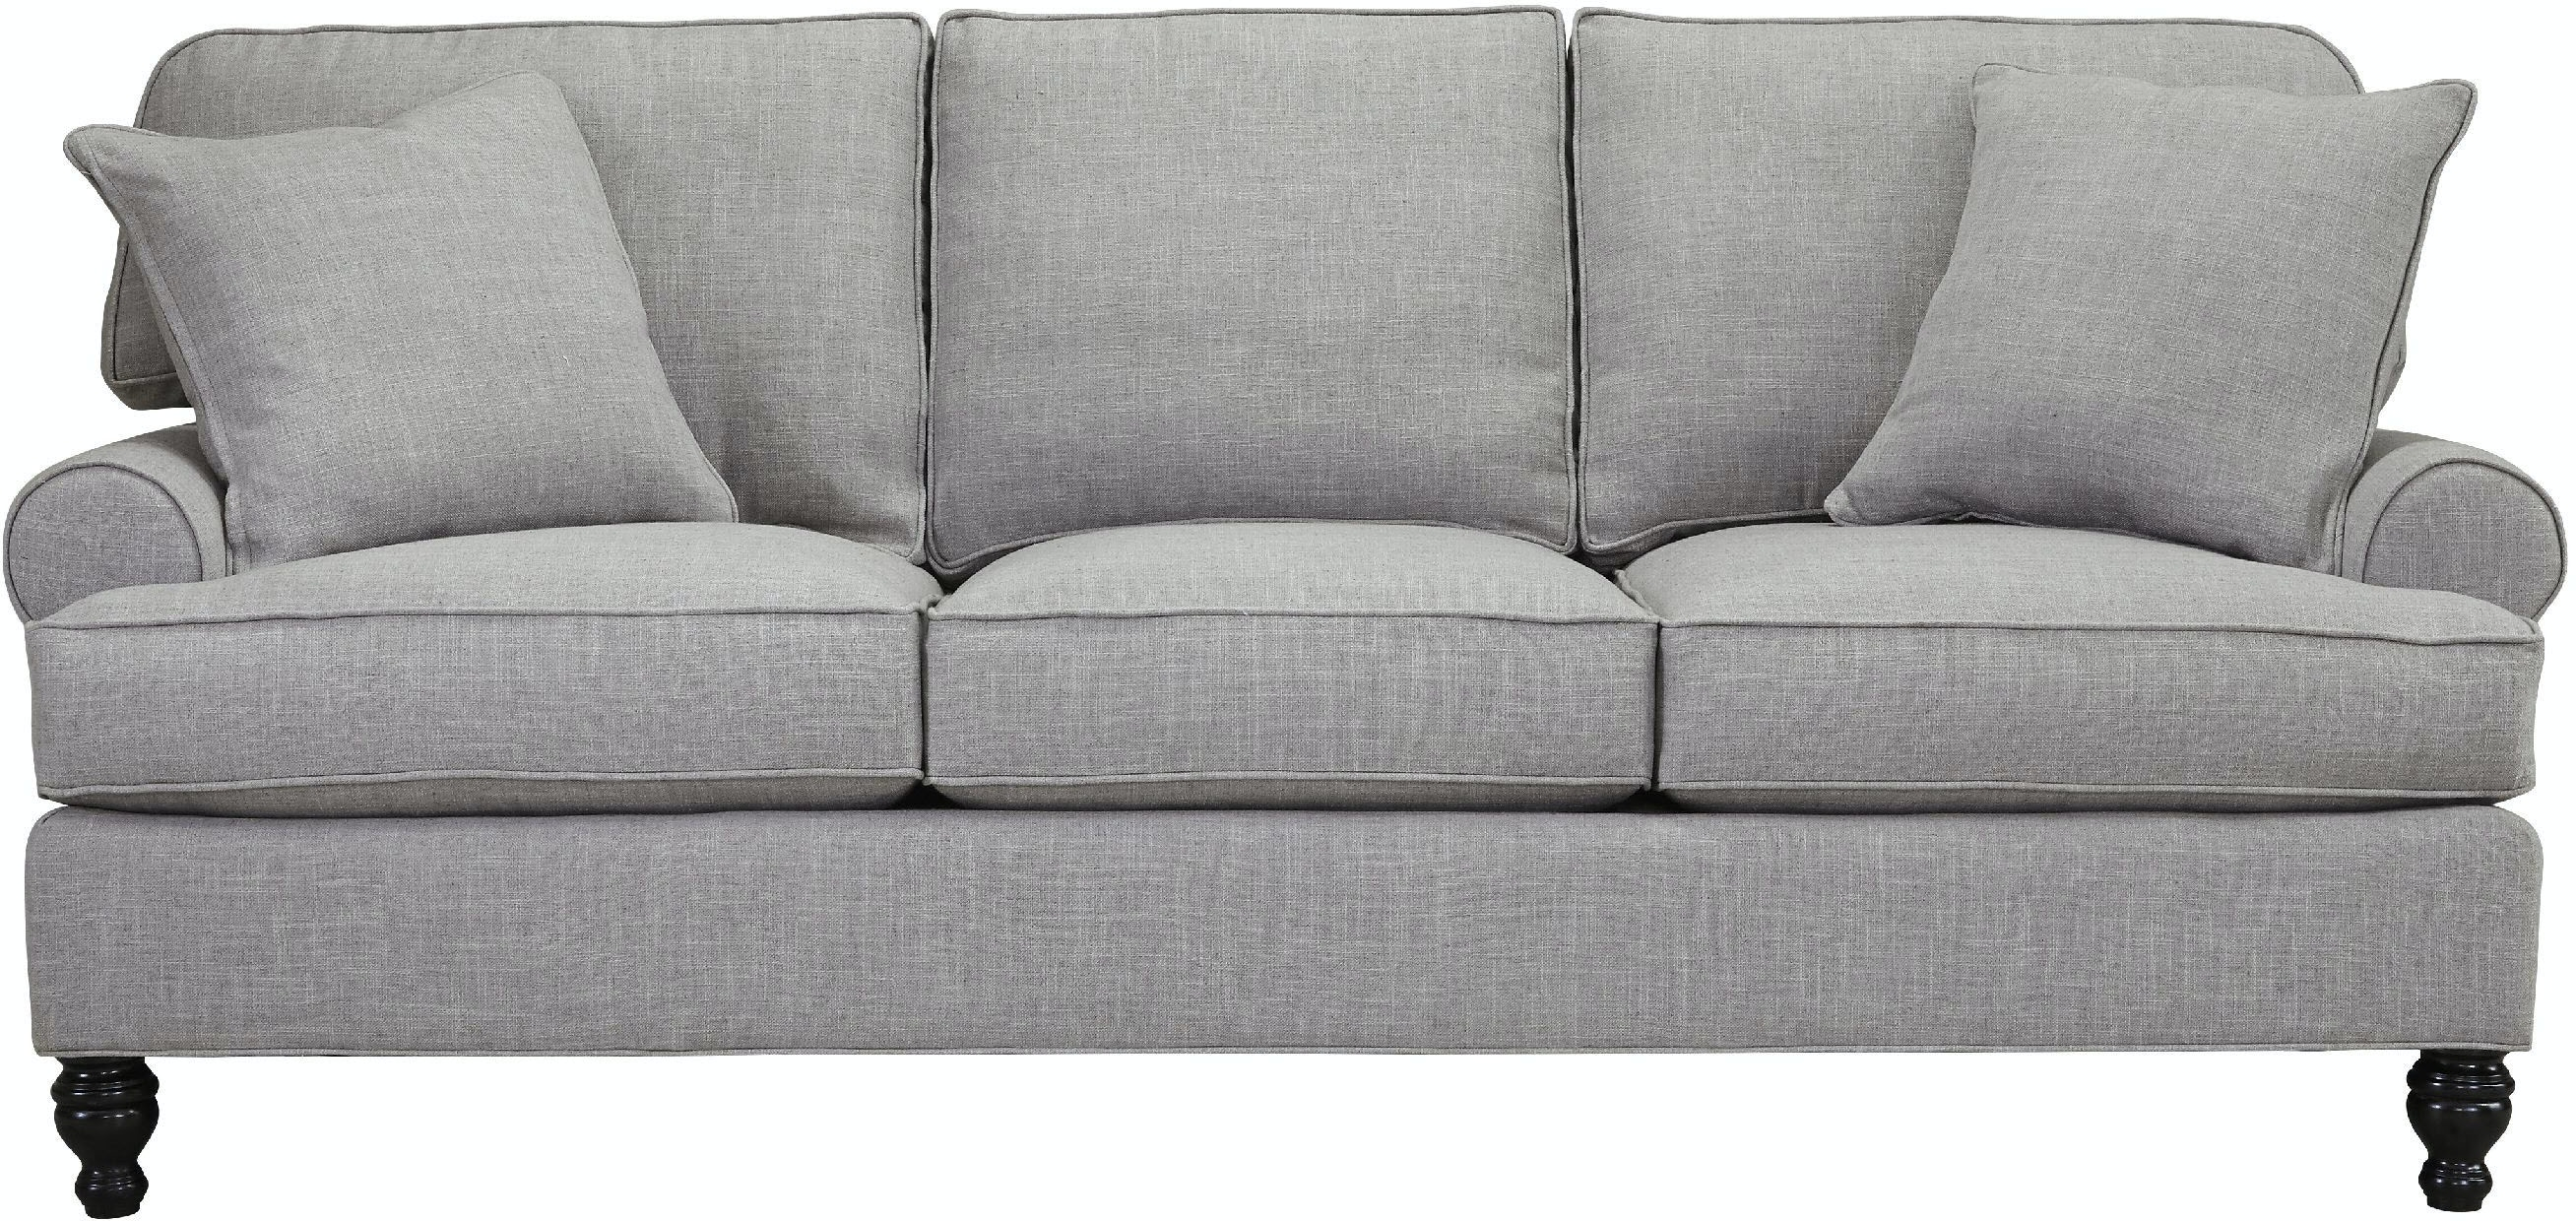 Southern Furniture Living Room Elena 7ft Sofa Whitley